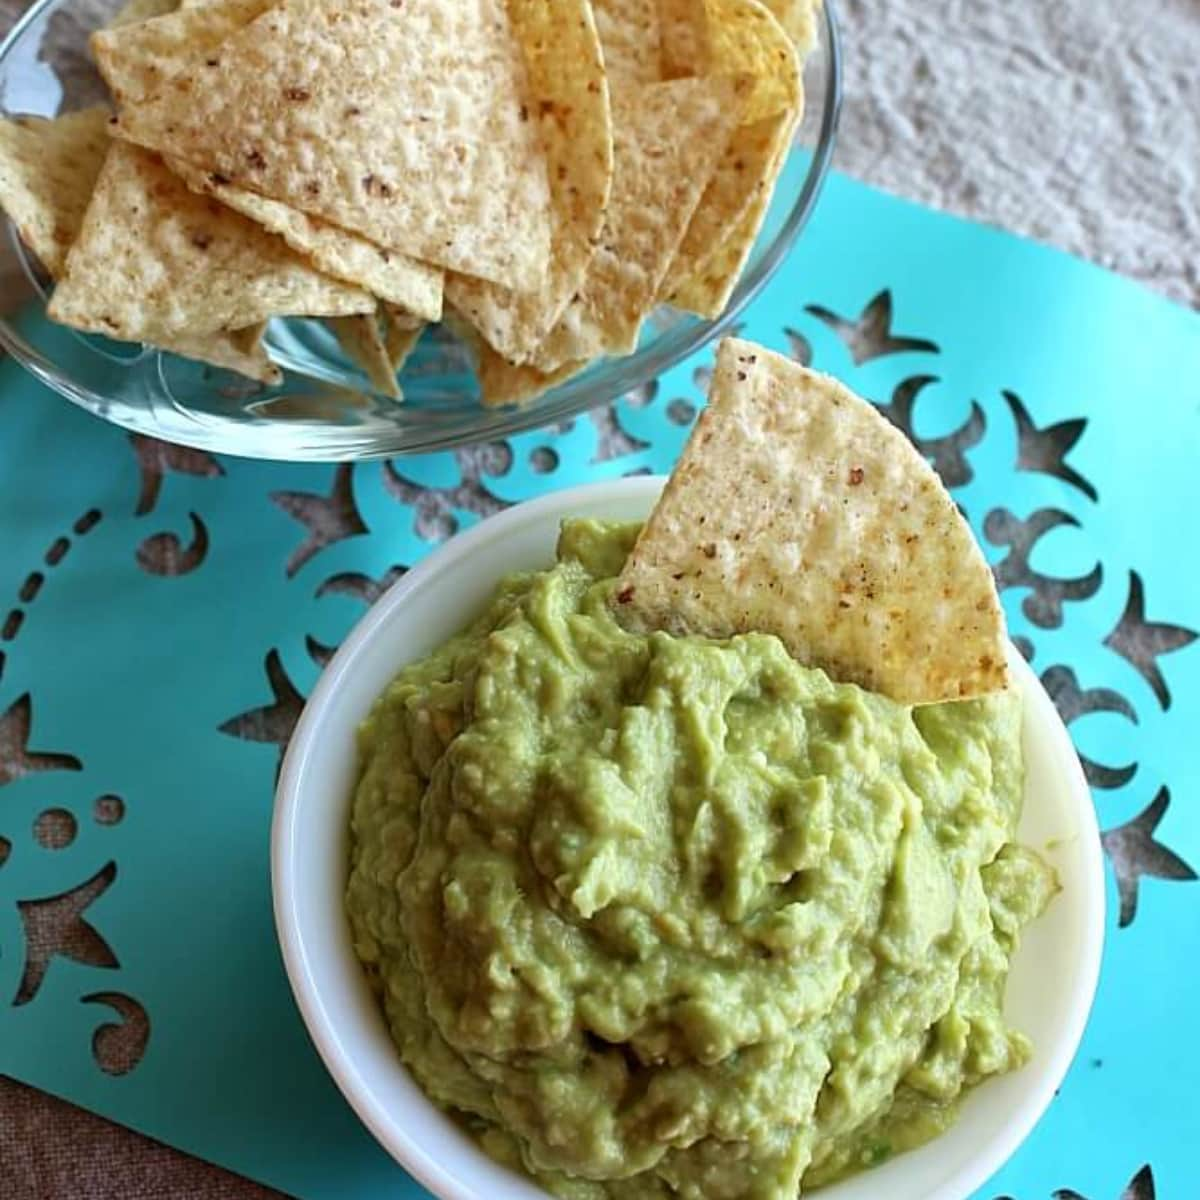 Bowls of guacamole and chips